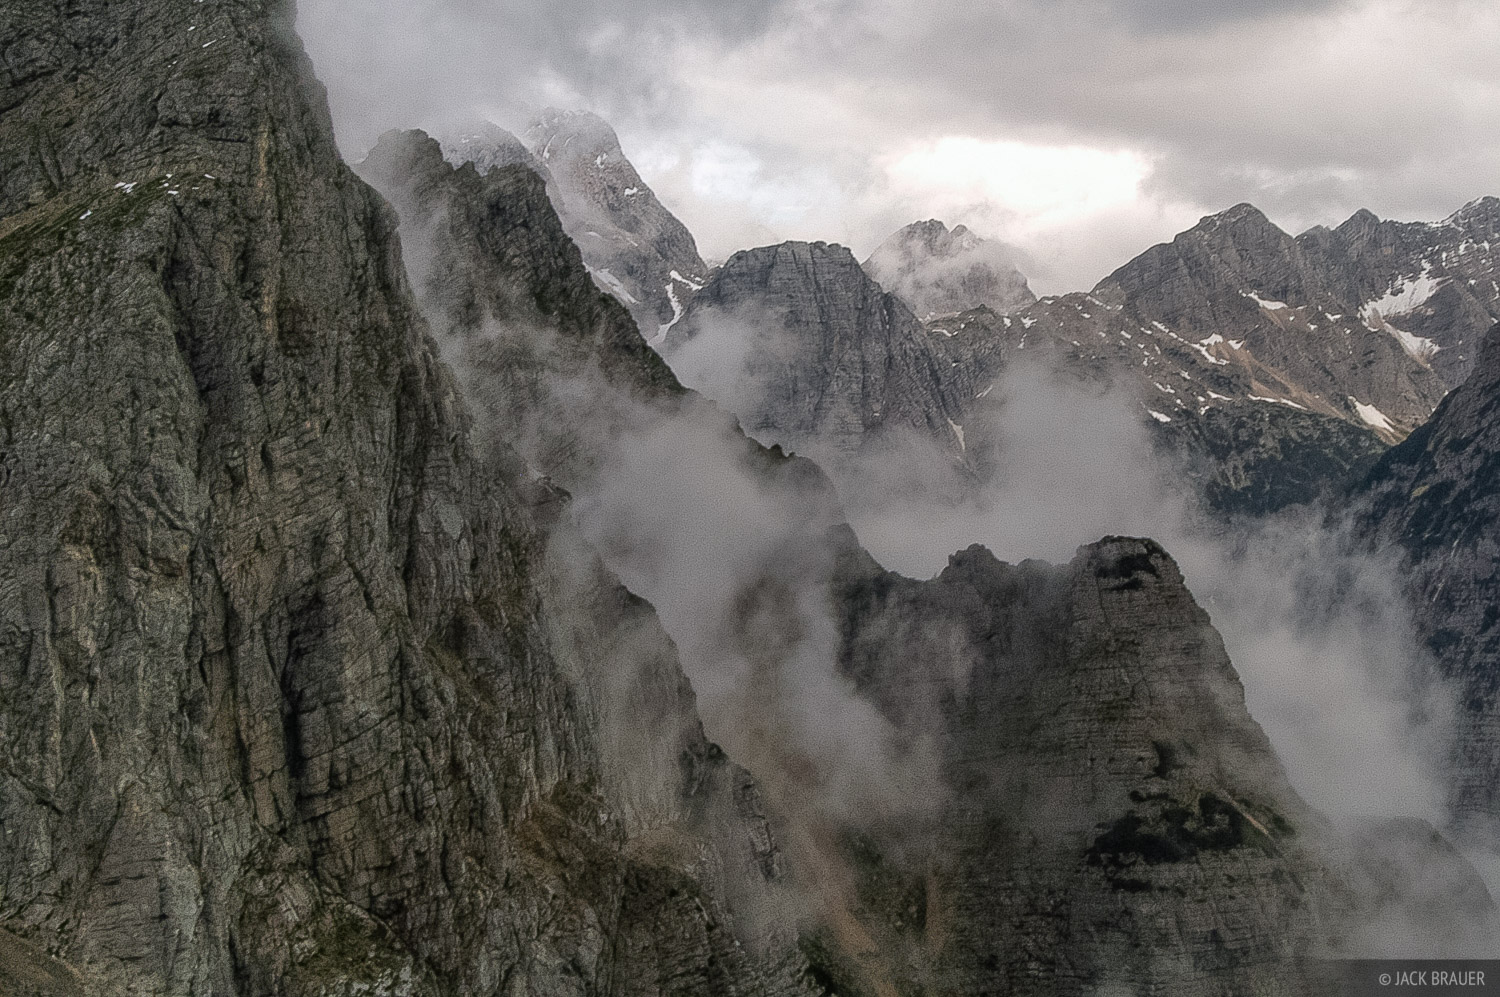 Pihavec, mountain mist, Julian Alps, Slovenia, Alps, photo